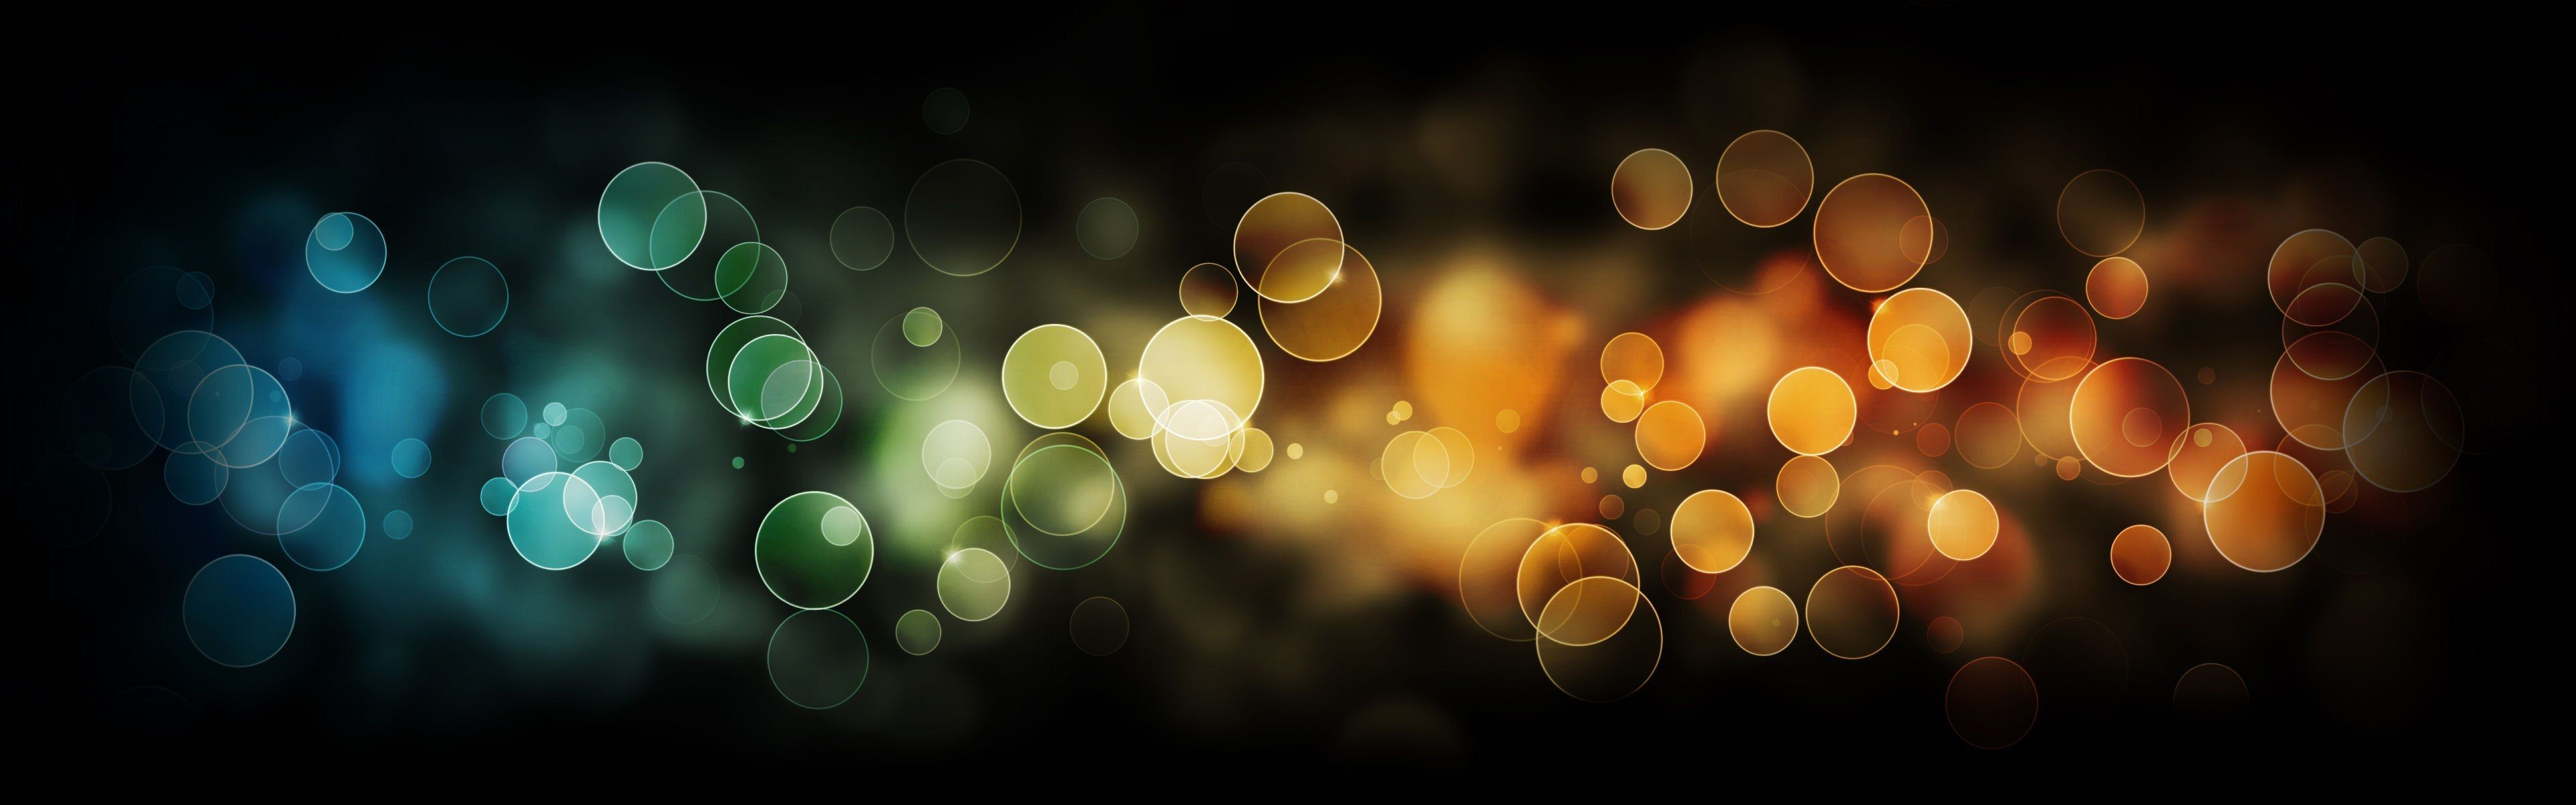 2 screen wallpapers 55 background pictures